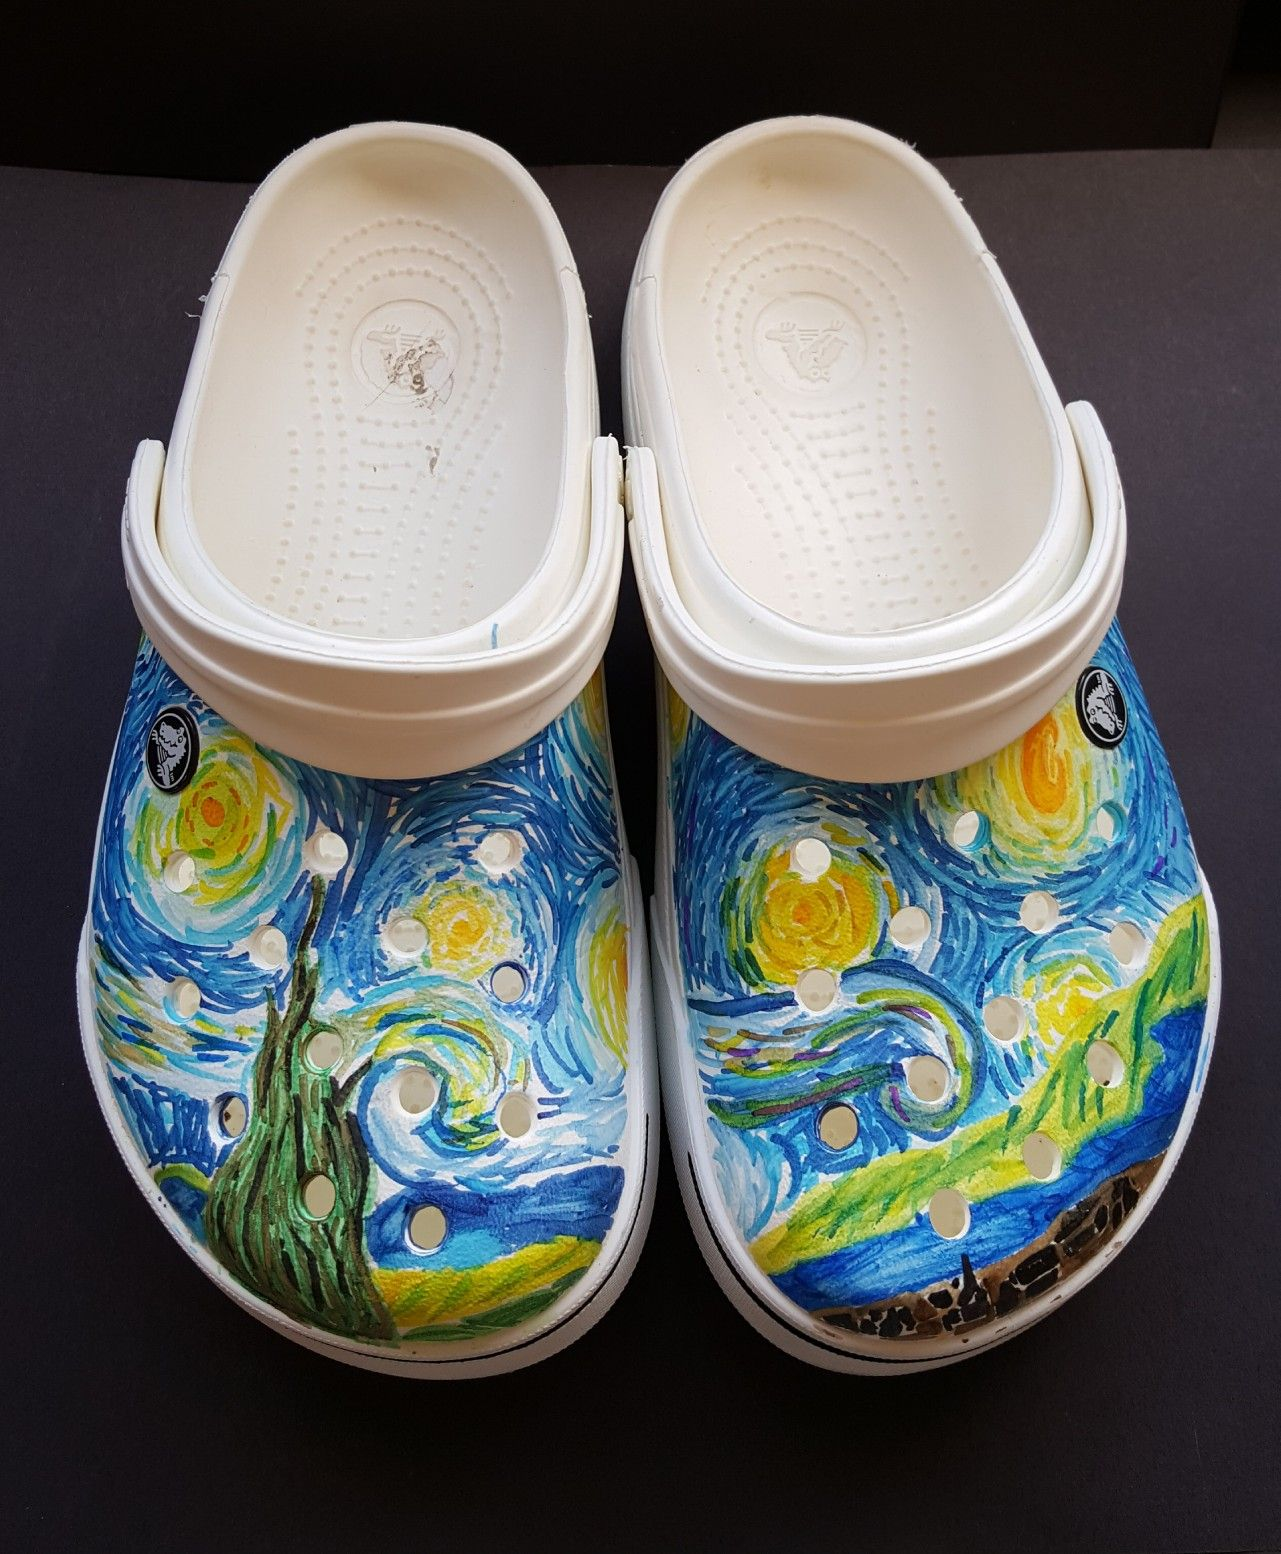 73fd00bba9c Starry night on my crocs. Done by my 7th grade student at Lowell Middle  School... Art Ed Central lancdon knocked it out of the park!!!